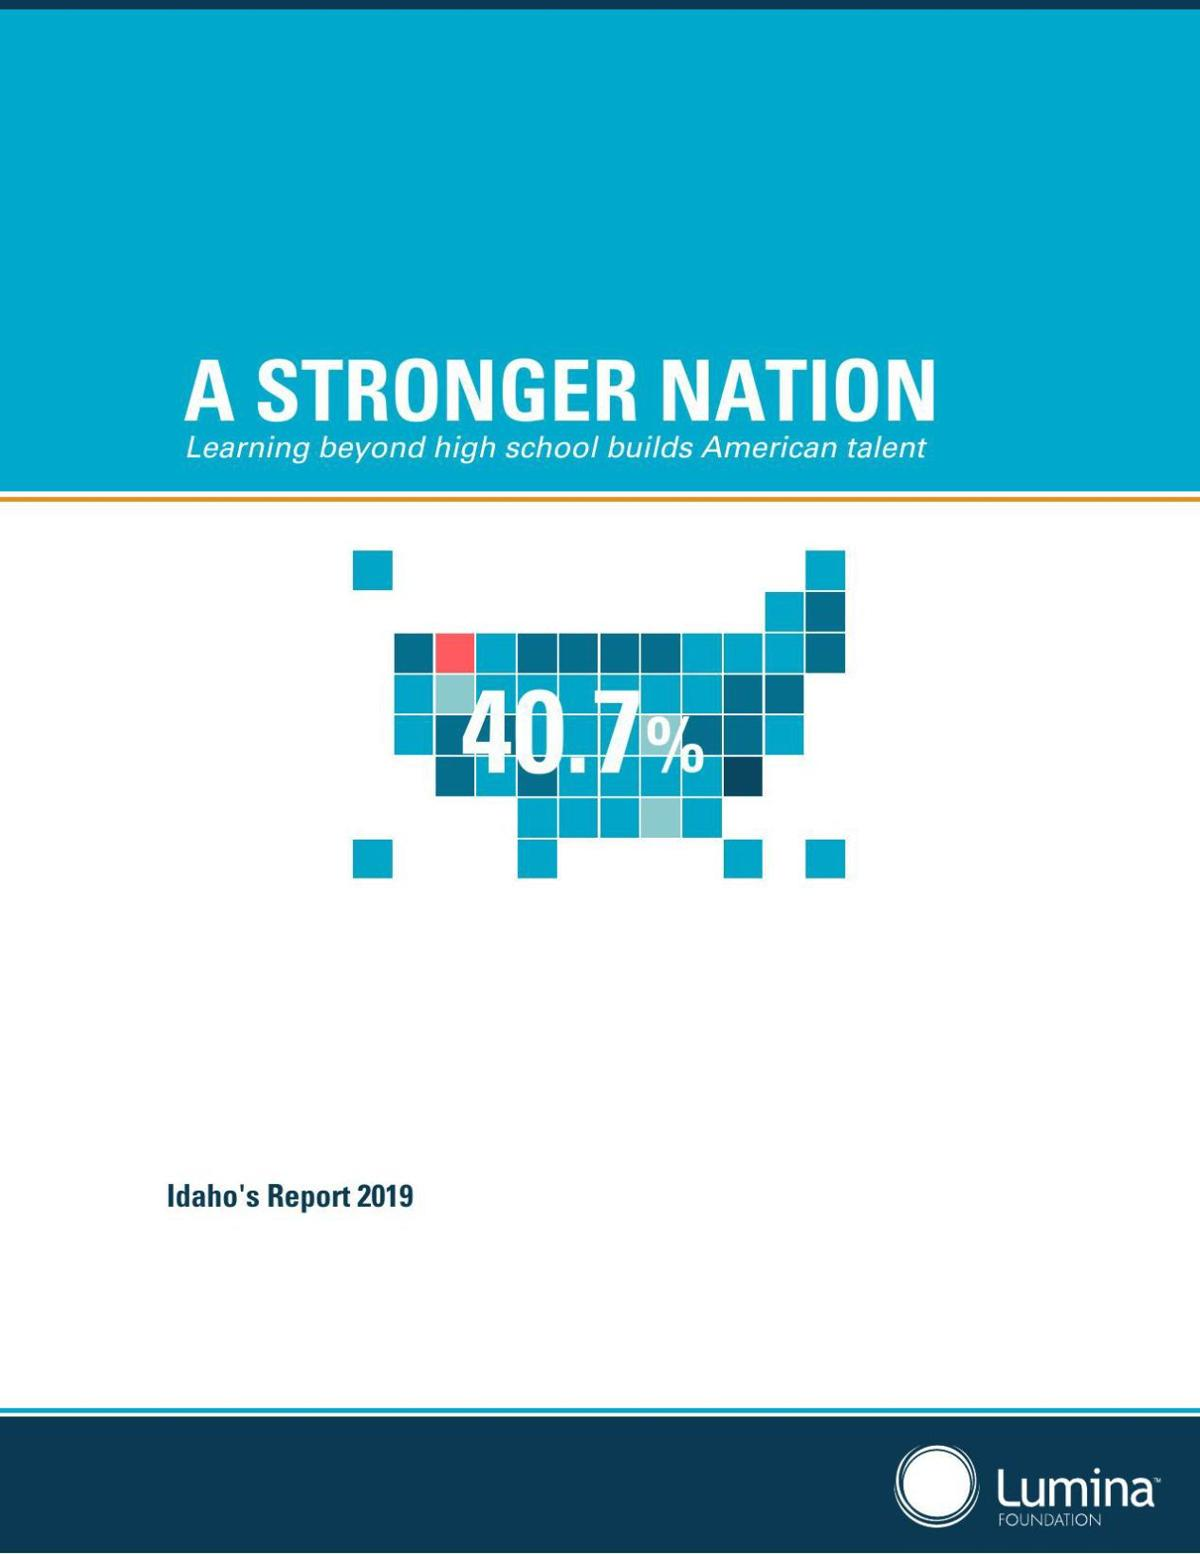 A STRONGER NATION